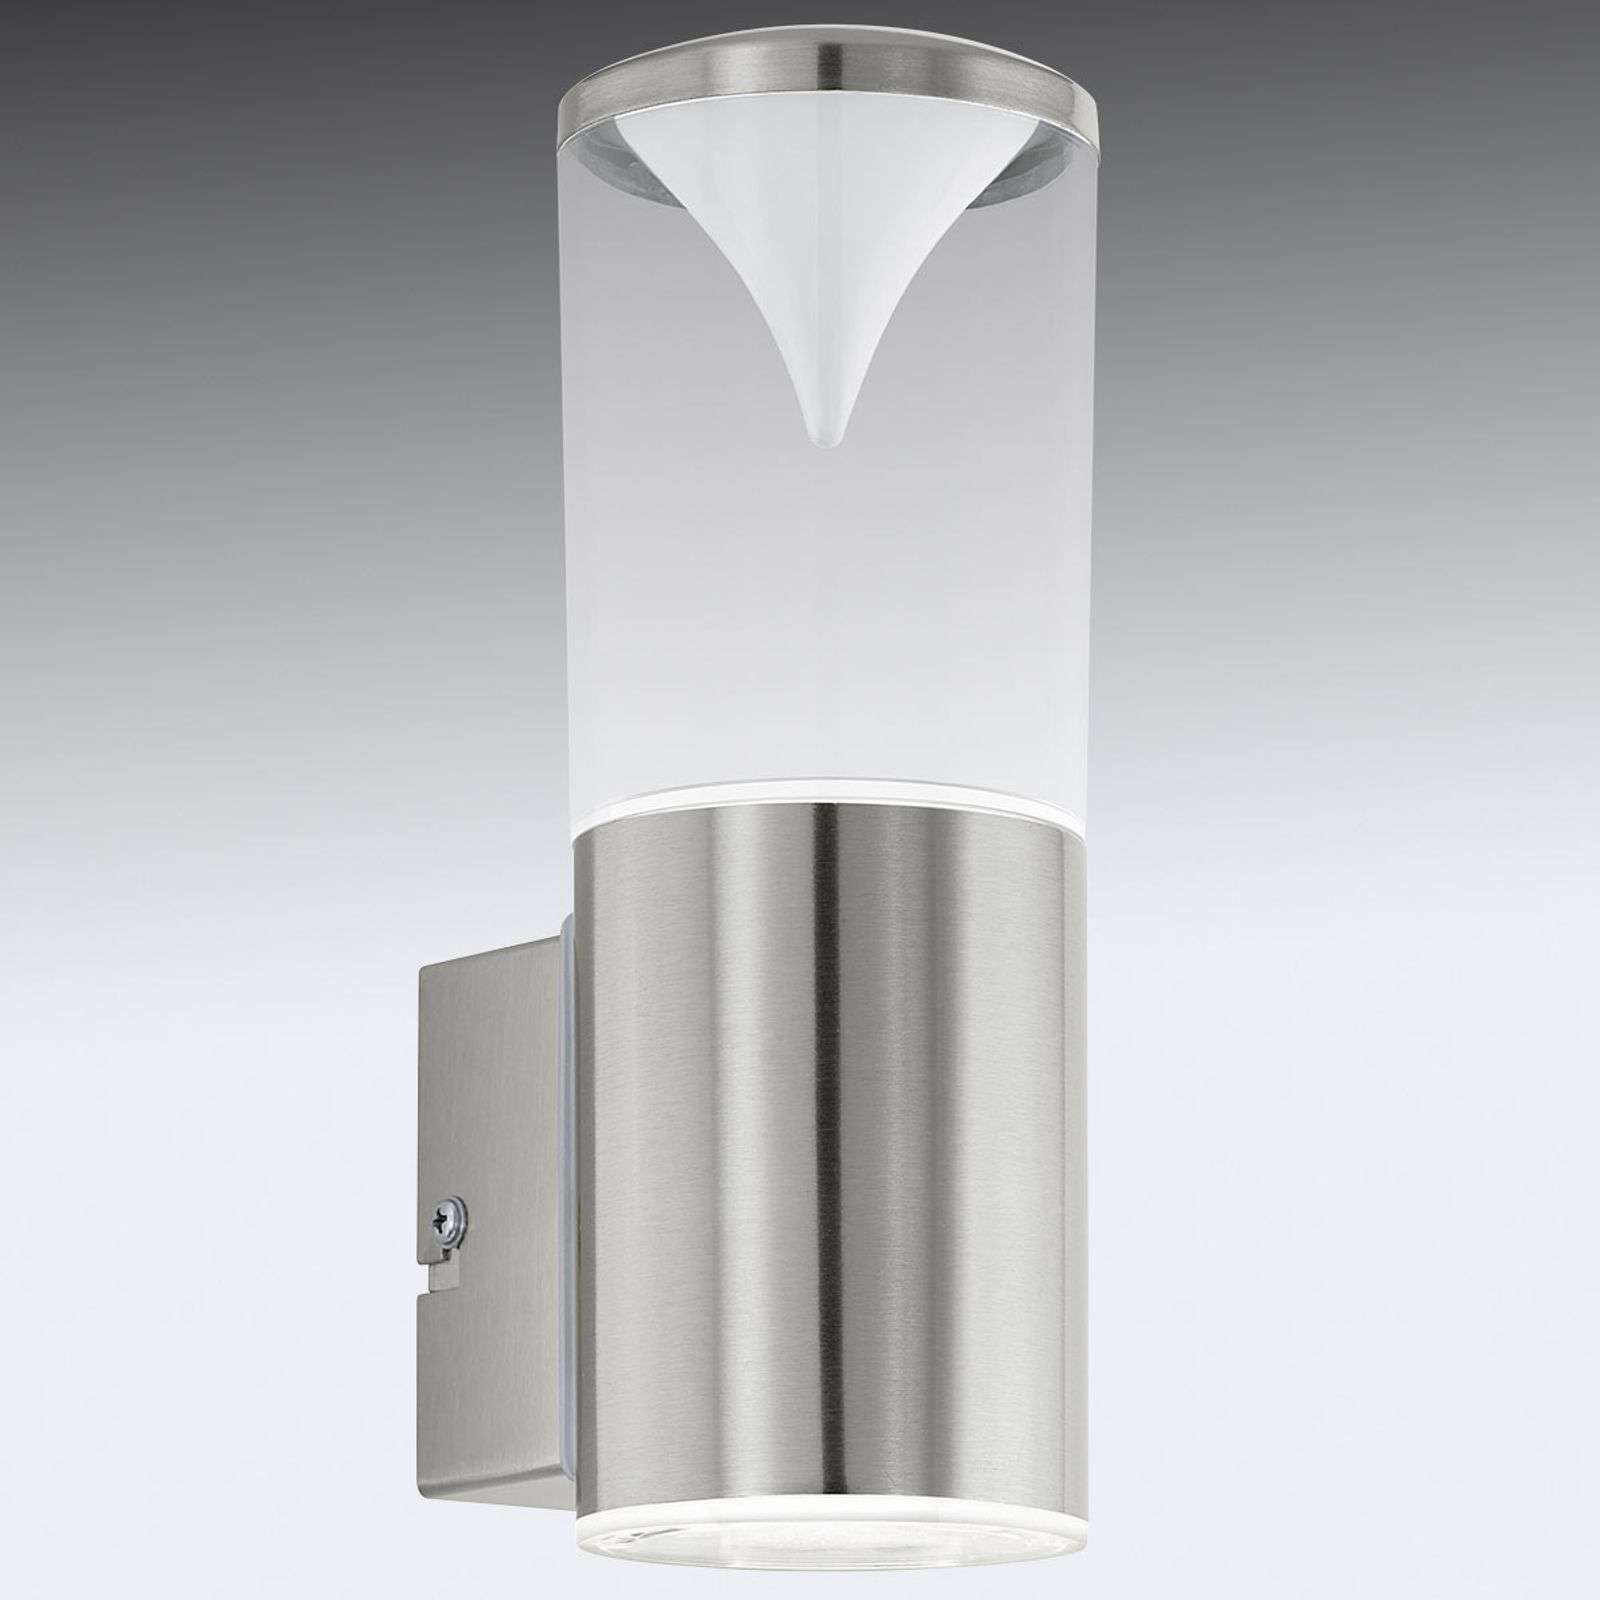 Elegante applique da esterni LED Penalva